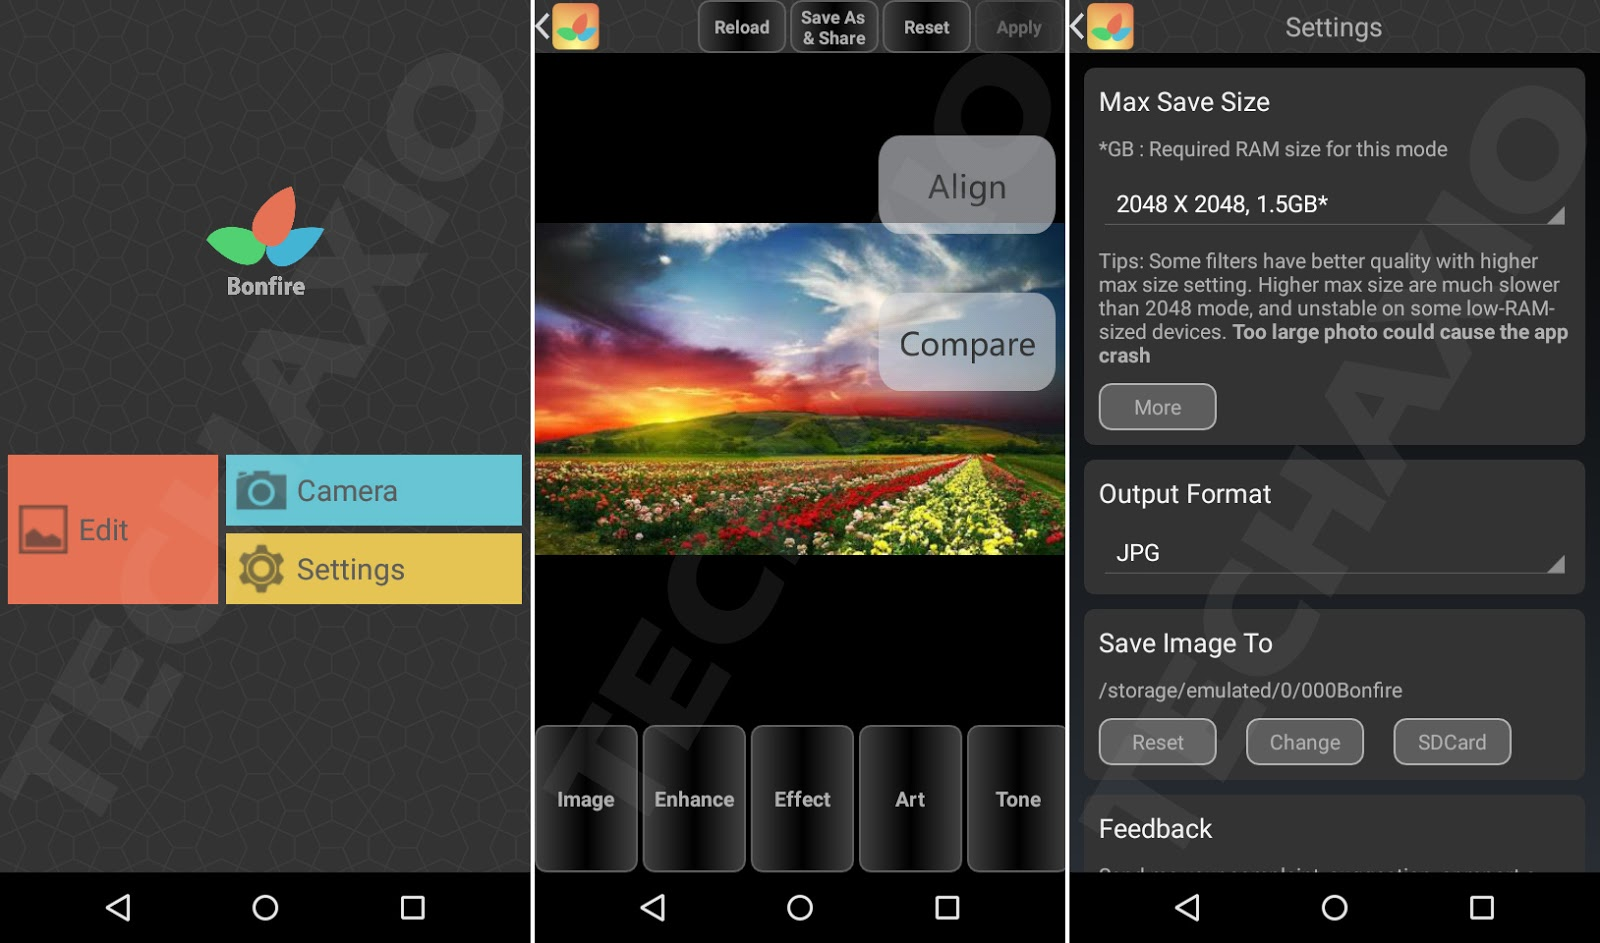 Bonfire Photo Editor Pro Screenshots